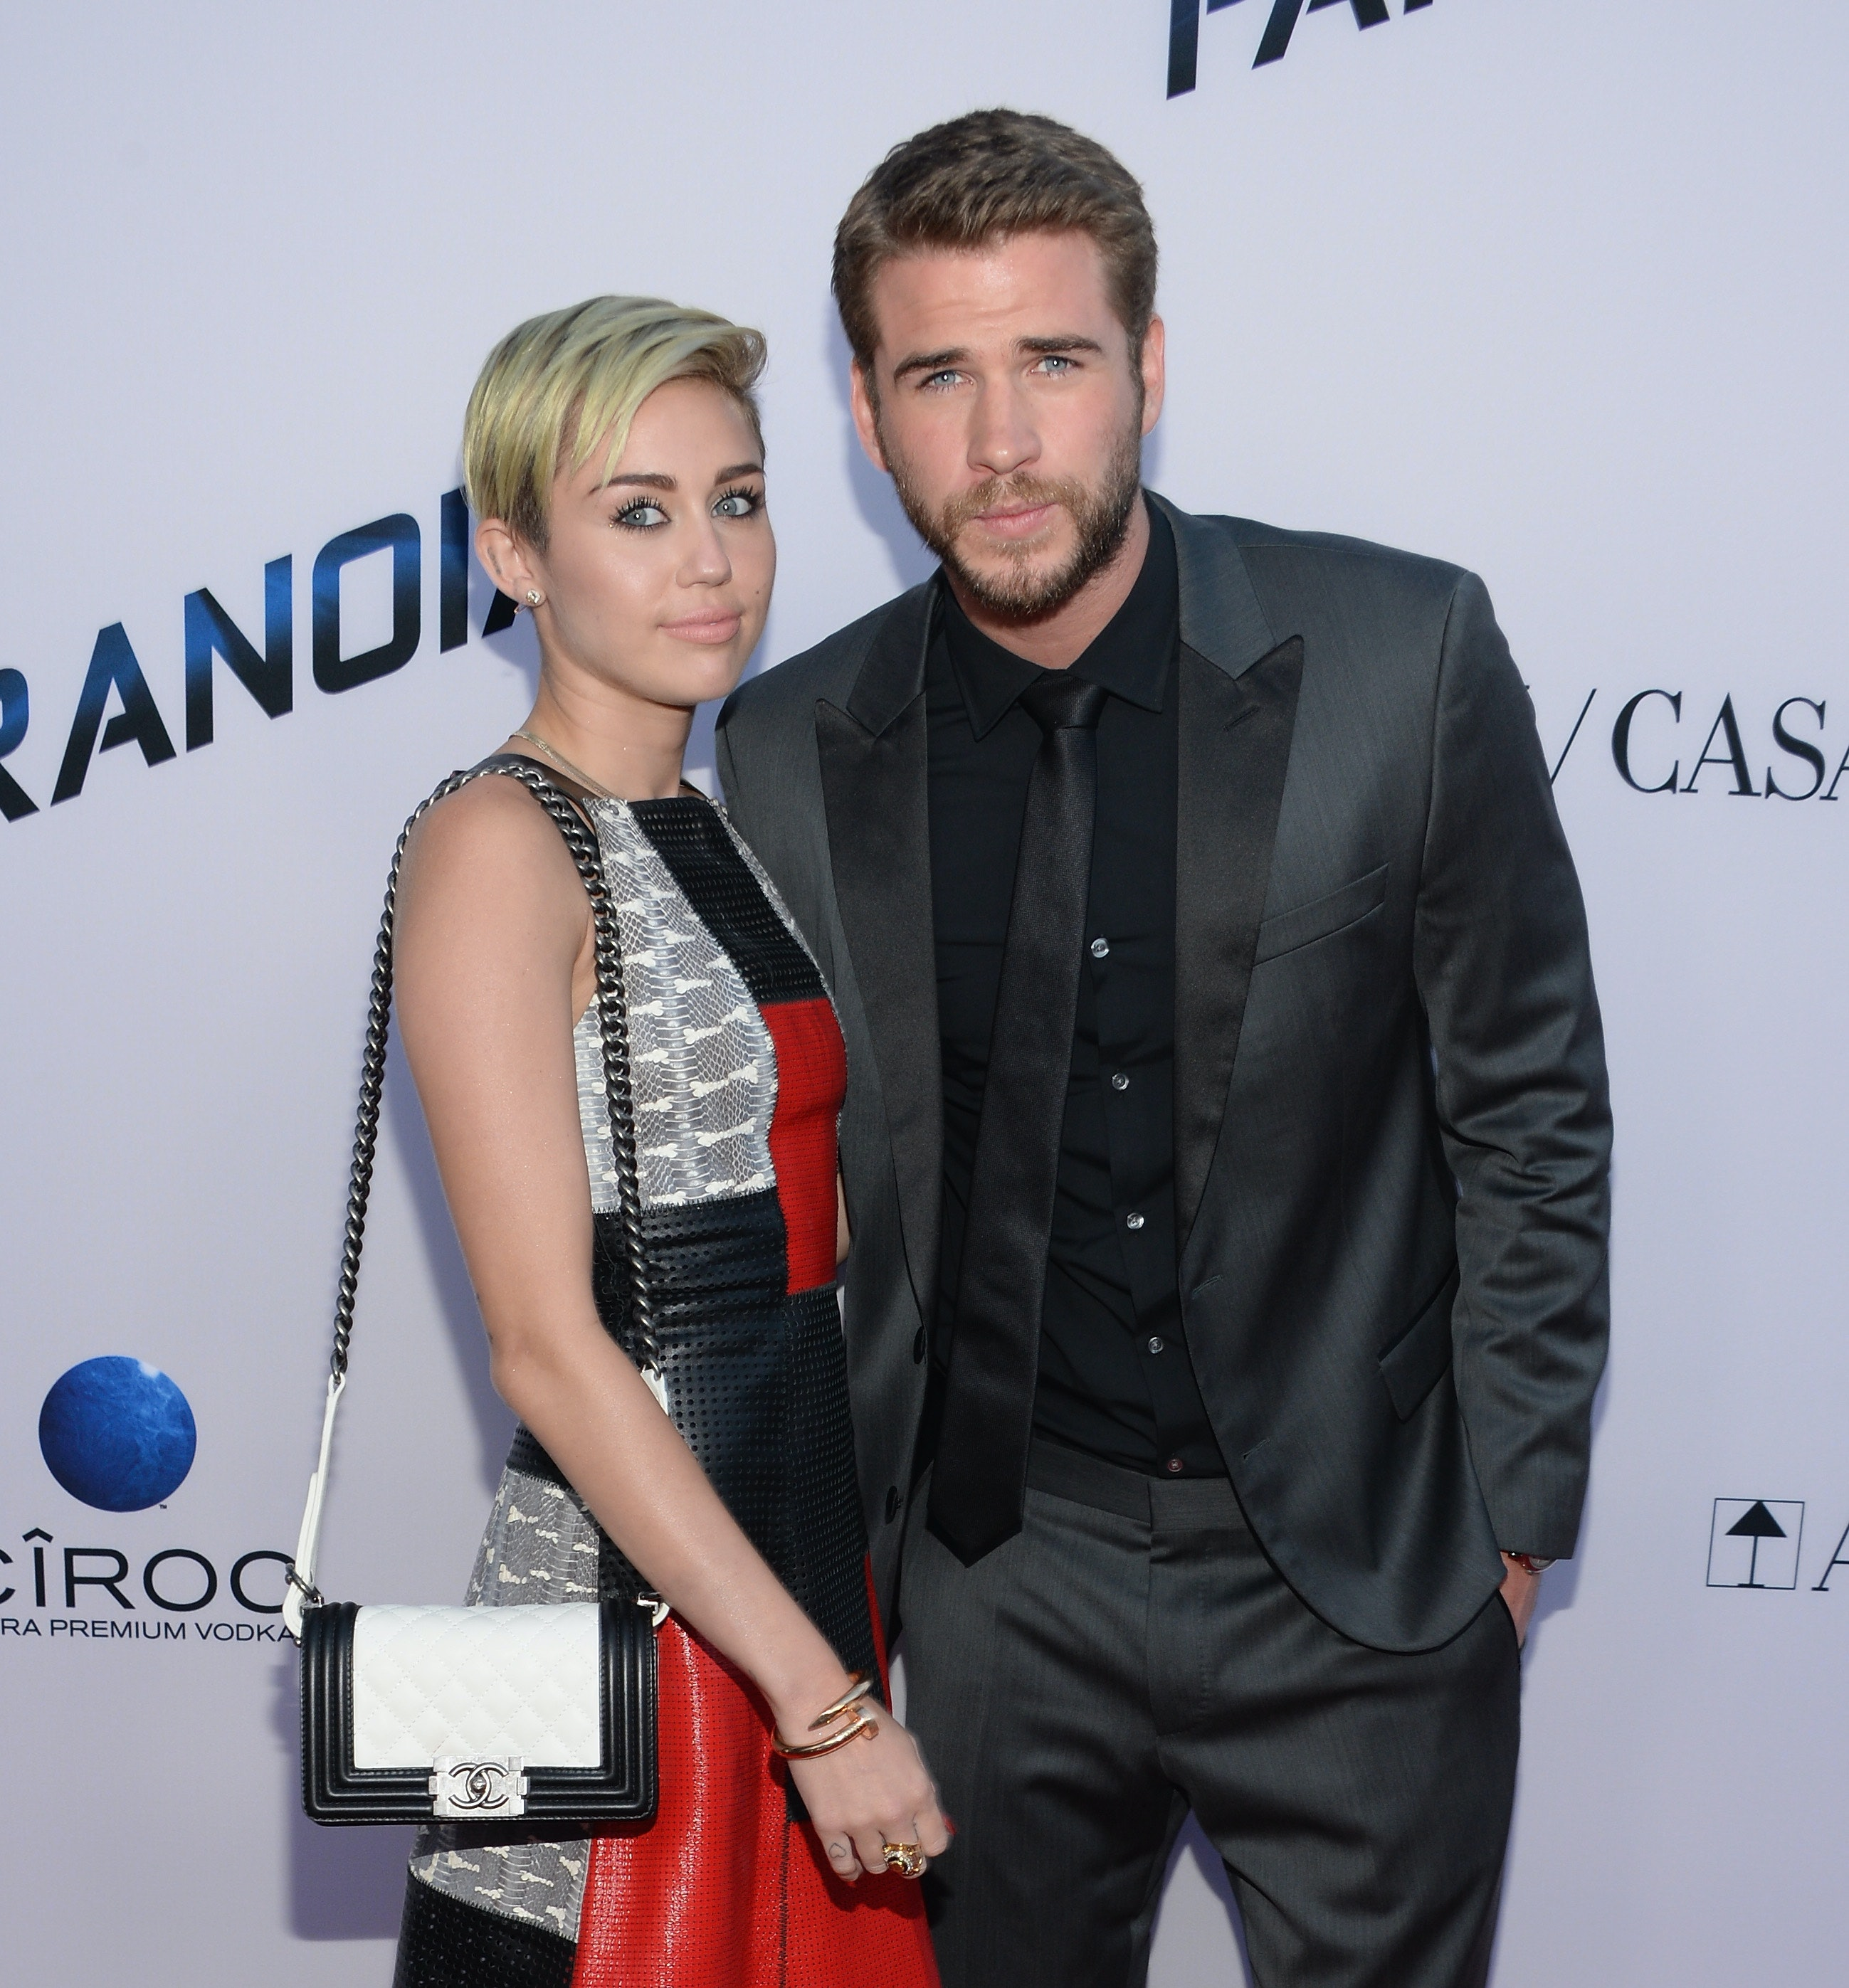 Miley dating who